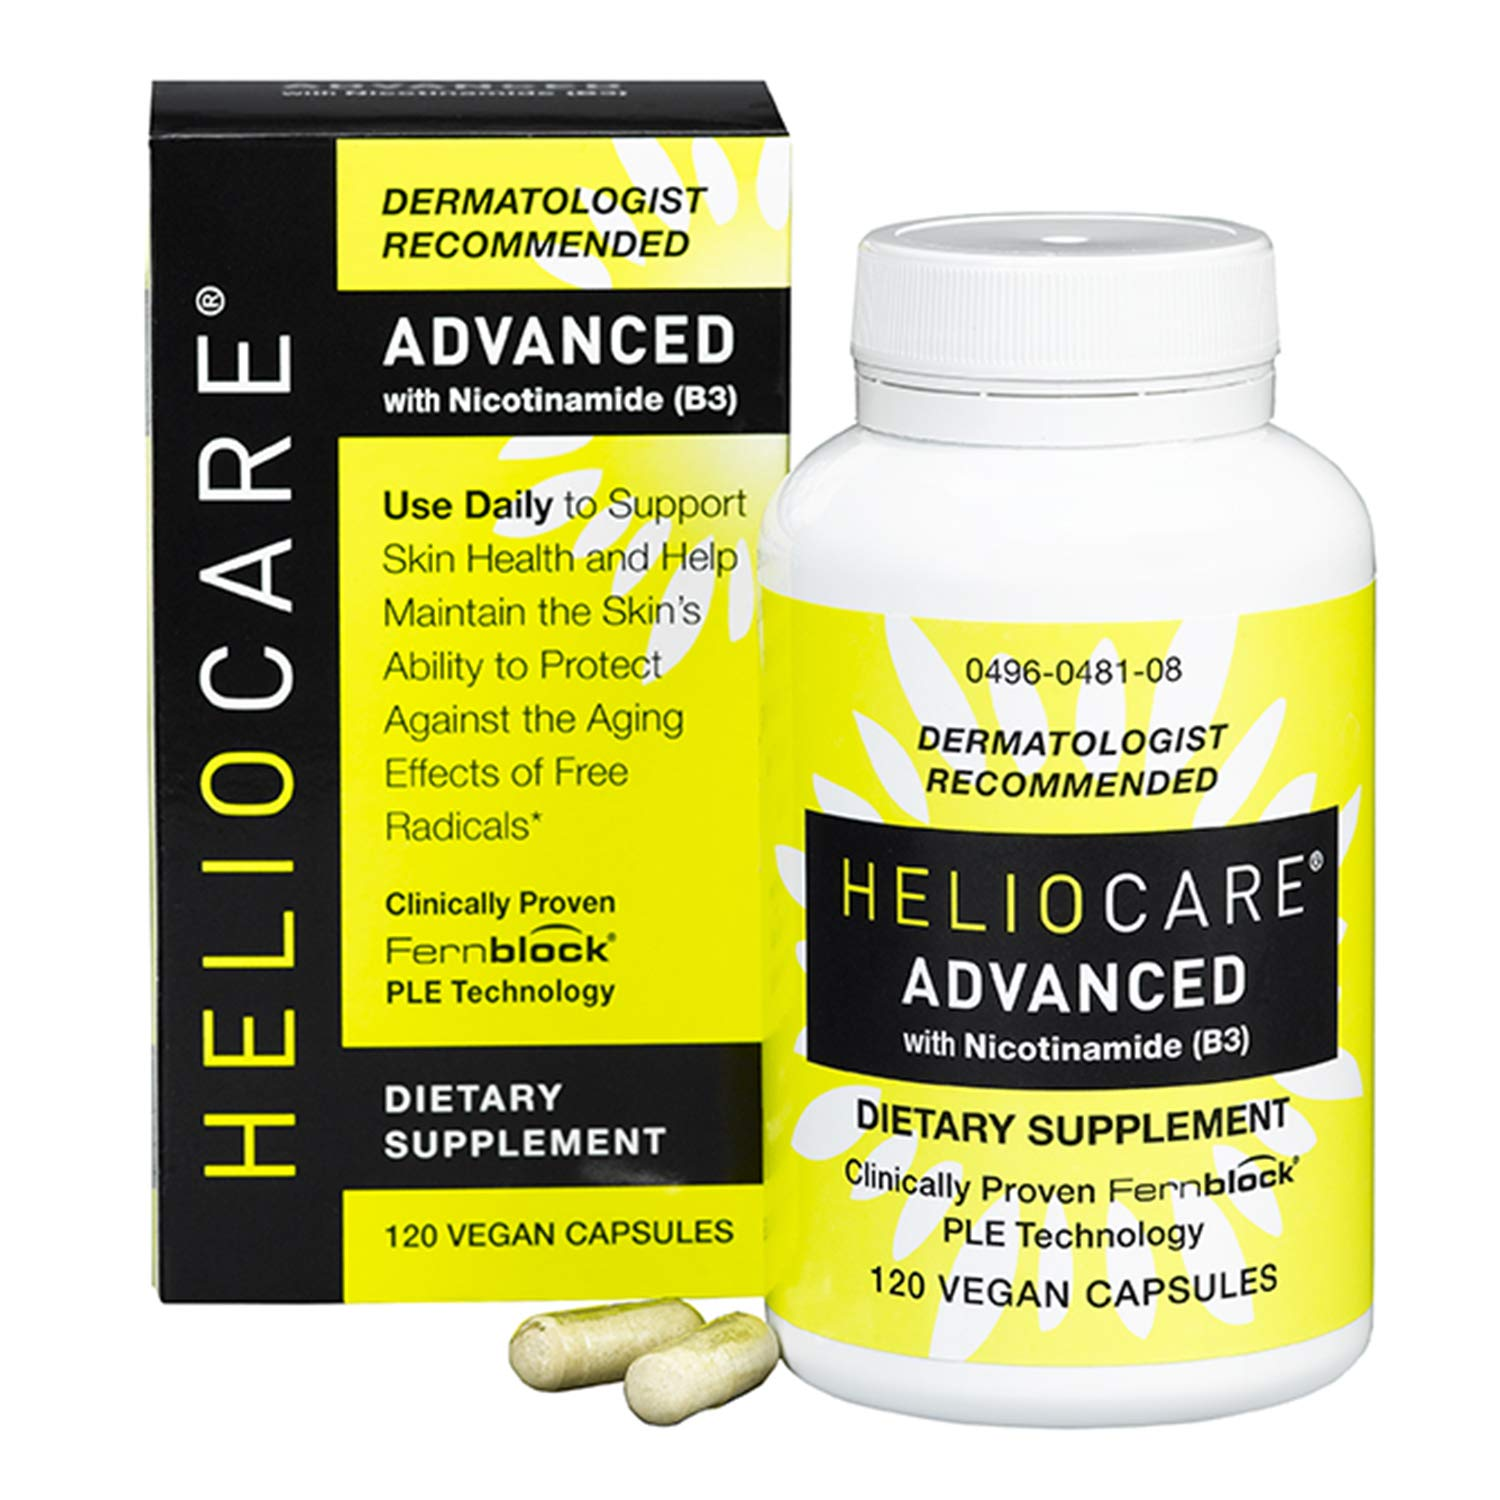 Heliocare Advanced Nicotinamide B3 Supplement: Niacinamide 500mg and Fernblock PLE Extract 240mg - Help Support Skin Cell Health with Antioxidant Rich Non Flush Vitamin B3 Niacin - 120 Vegan Capsules